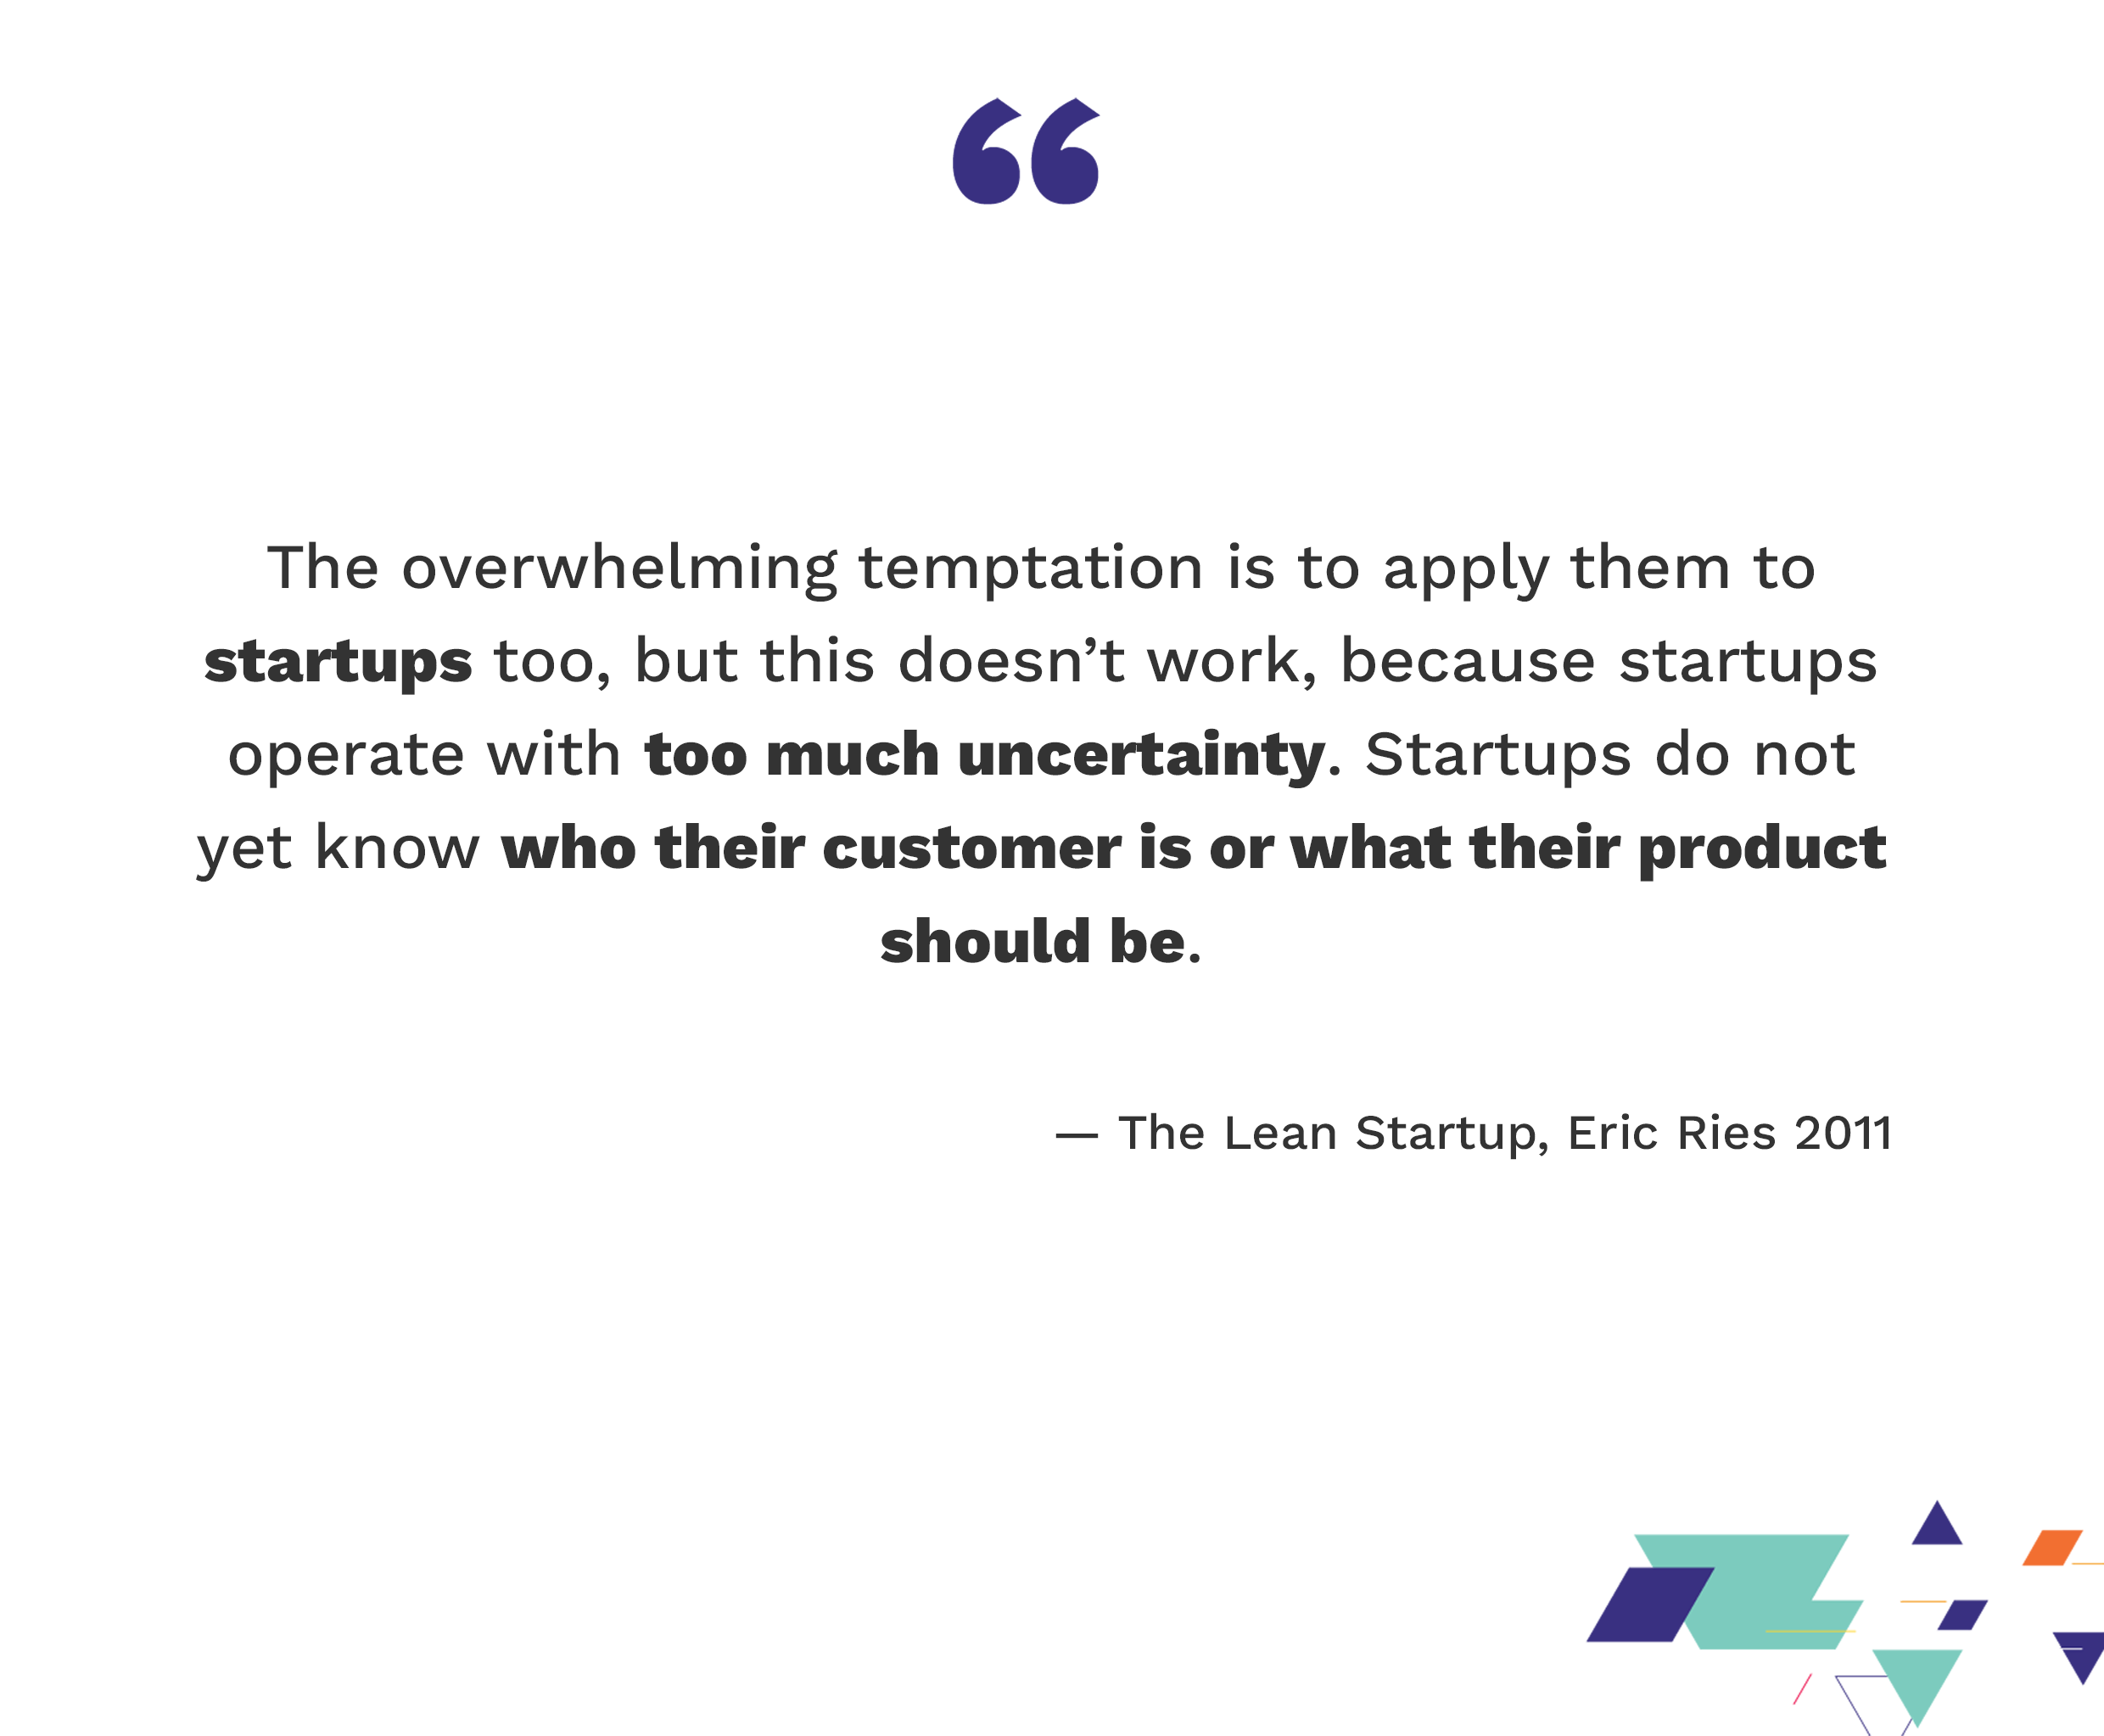 The overwhelming temptation is to apply them to startups too, but this doesn't work, because startups operate with too much uncertainty. Startups do not yet know who their customer is or what their product should be. — The Lean Startup, Eric Ries 2011